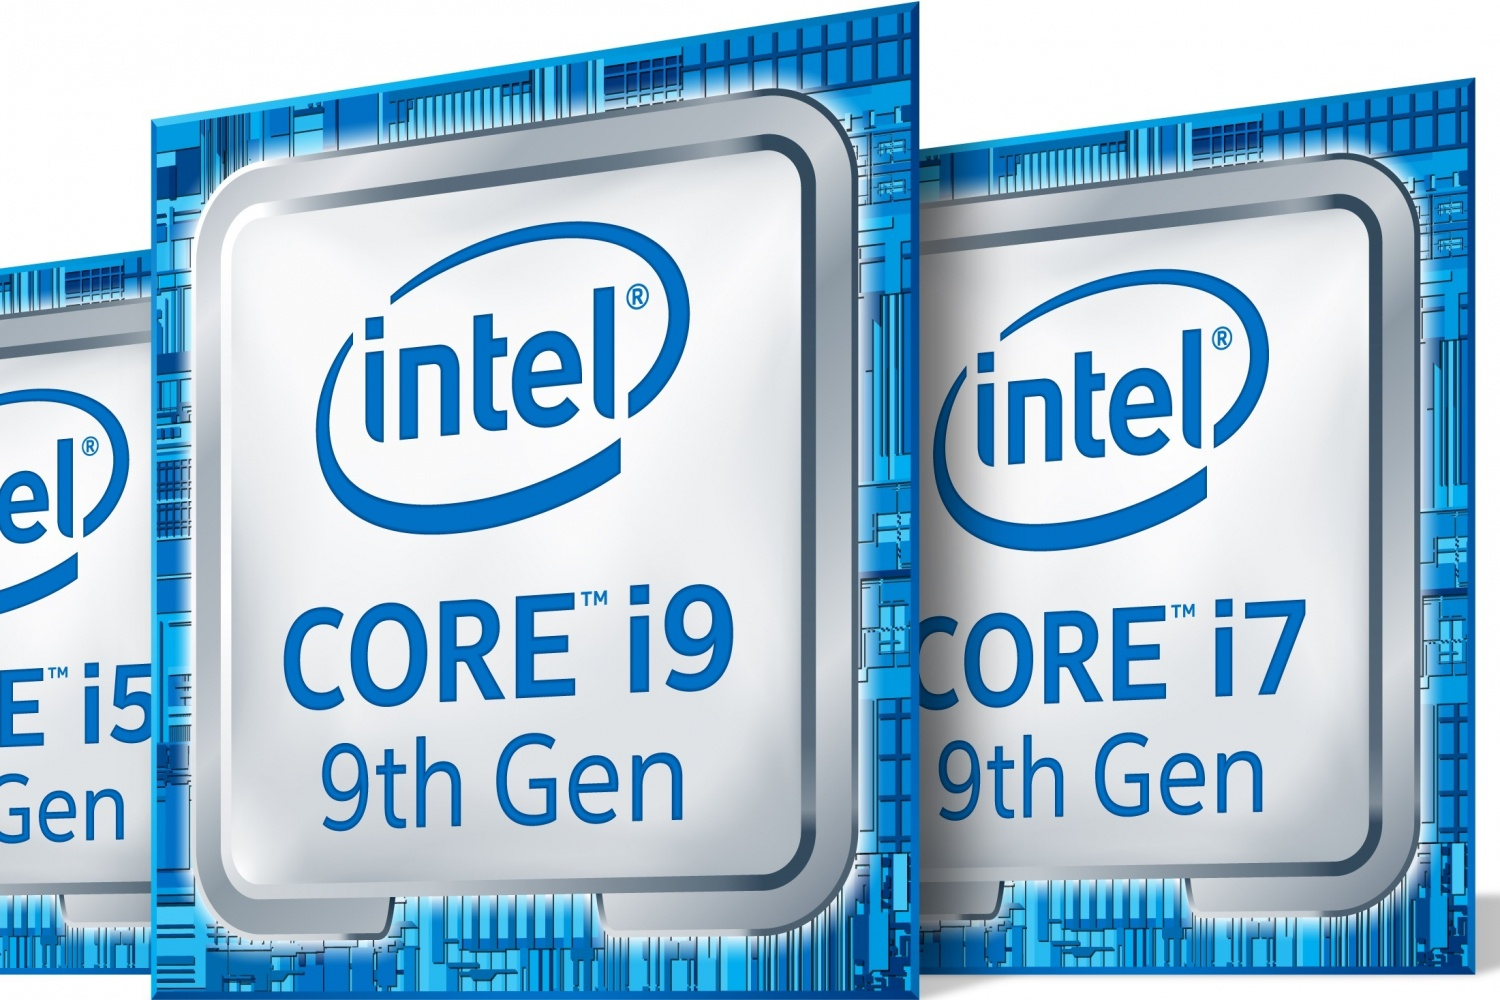 Intel-9th-Gen-Core-6-1500x1000_c